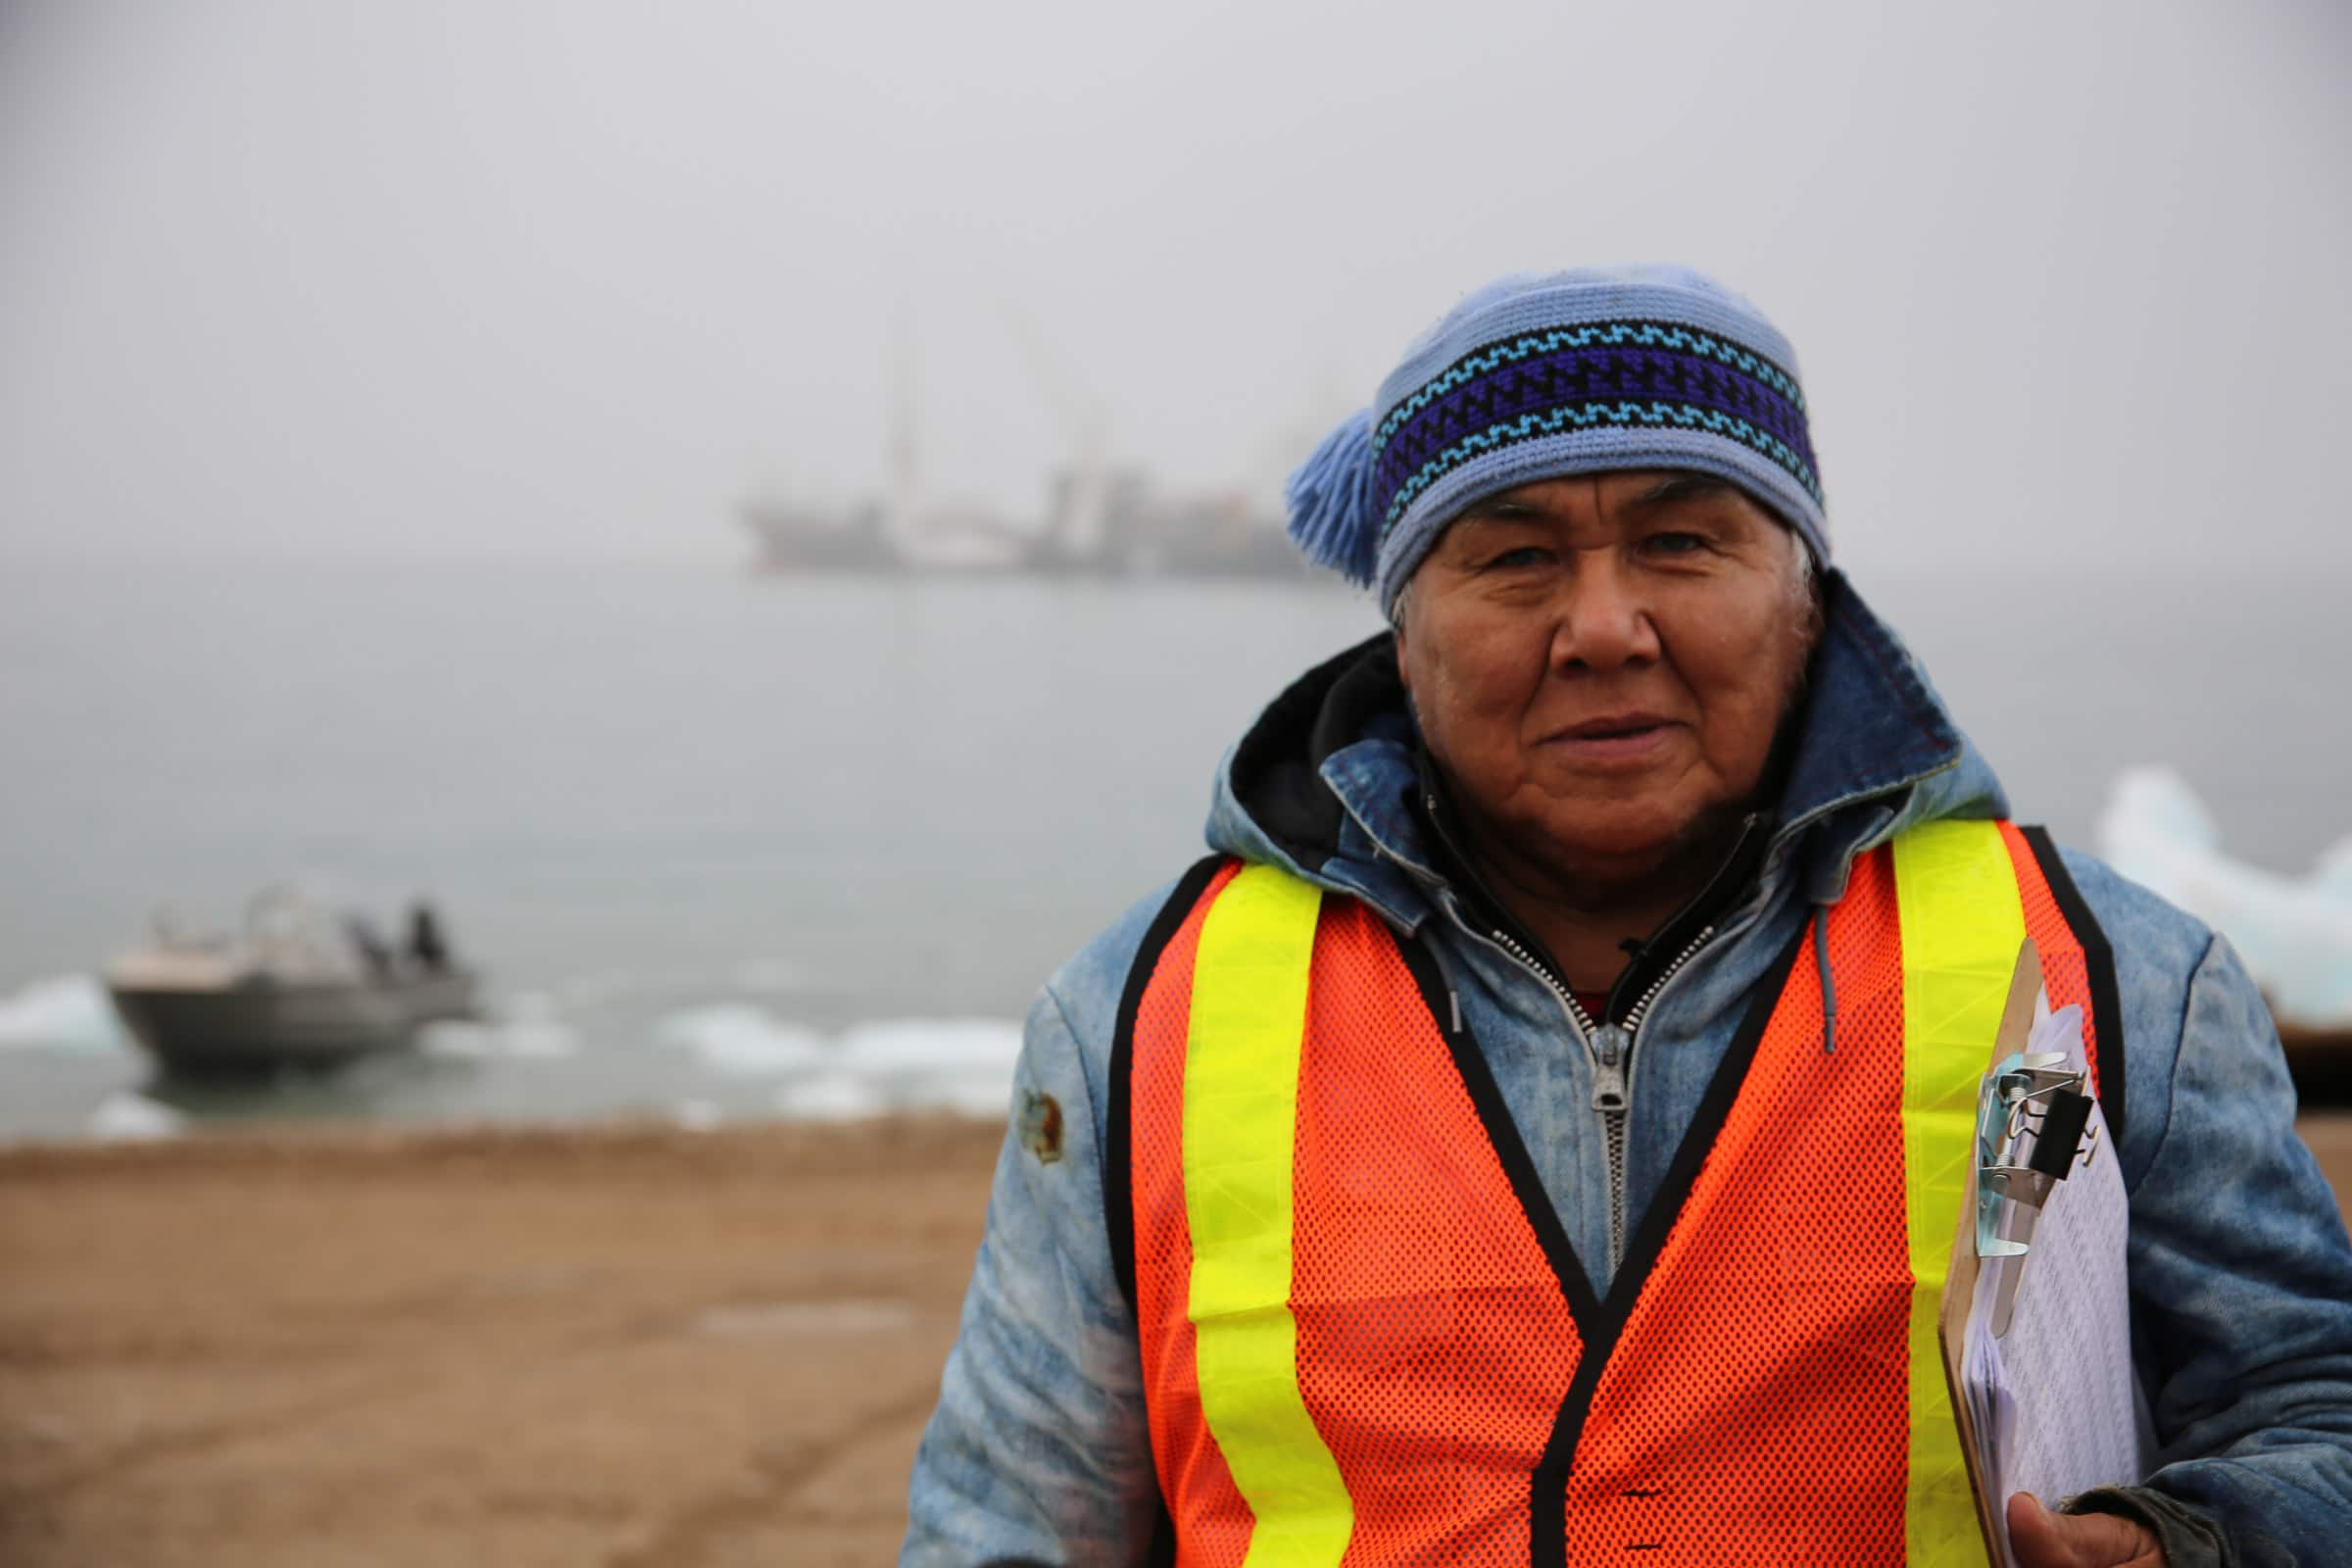 Larry Audlaluk, an original resident of Grise Fiord, is an integral part of the sealift from the community side.